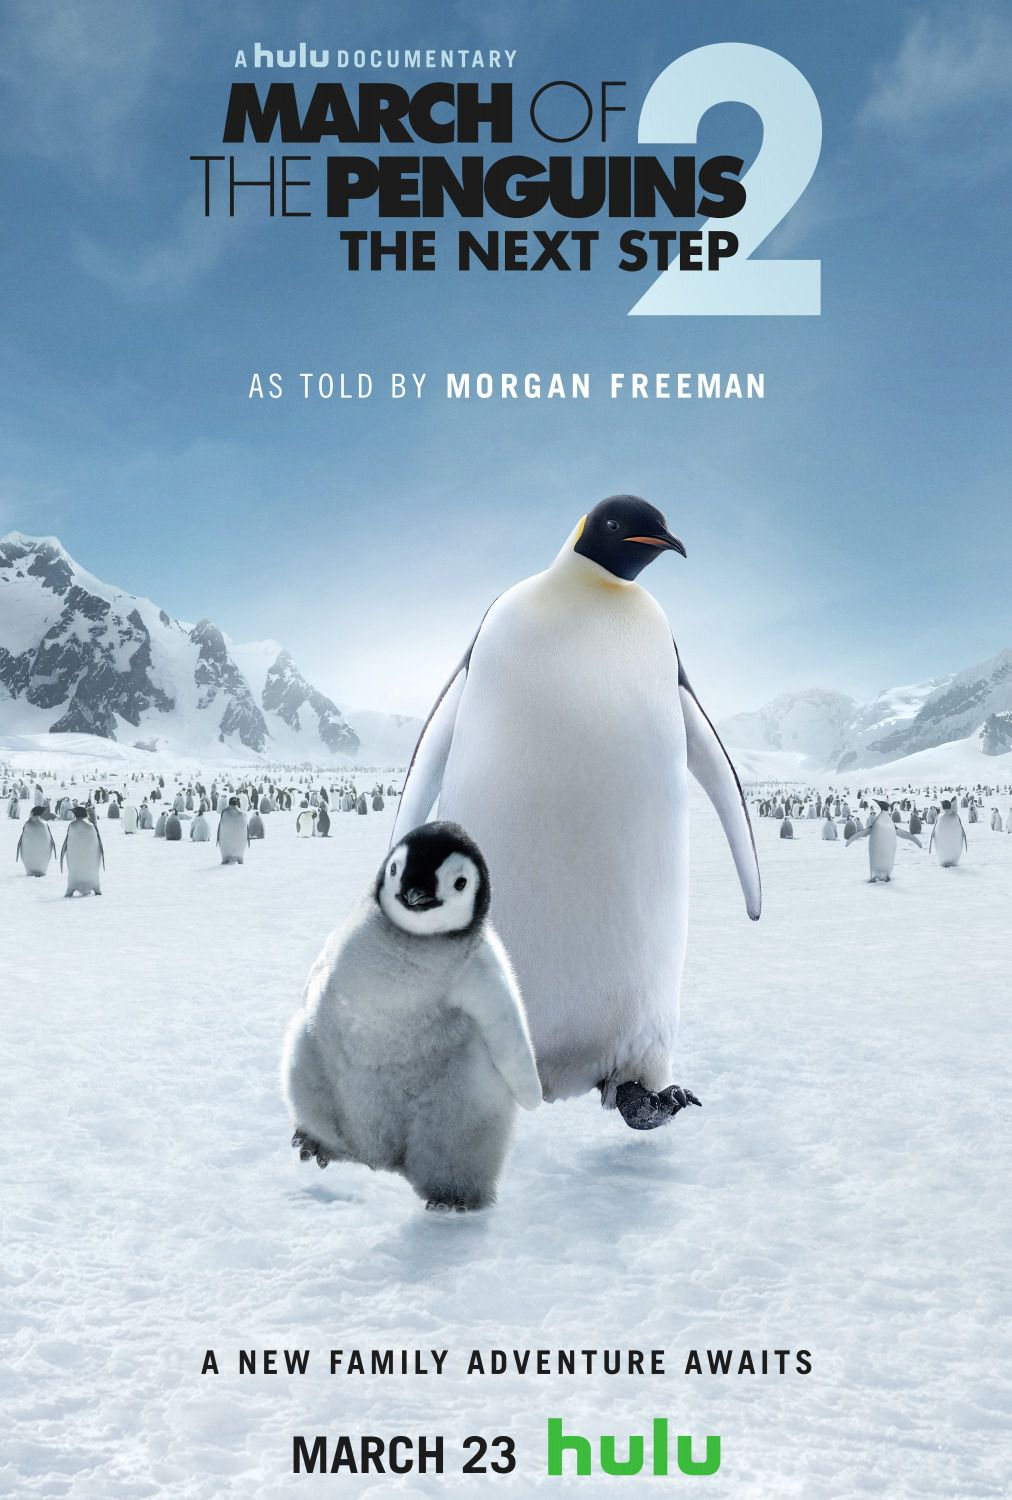 March of the Penguins 2 the next step - Lempereur - Docu Film Poster by Morgan Freeman - film poster